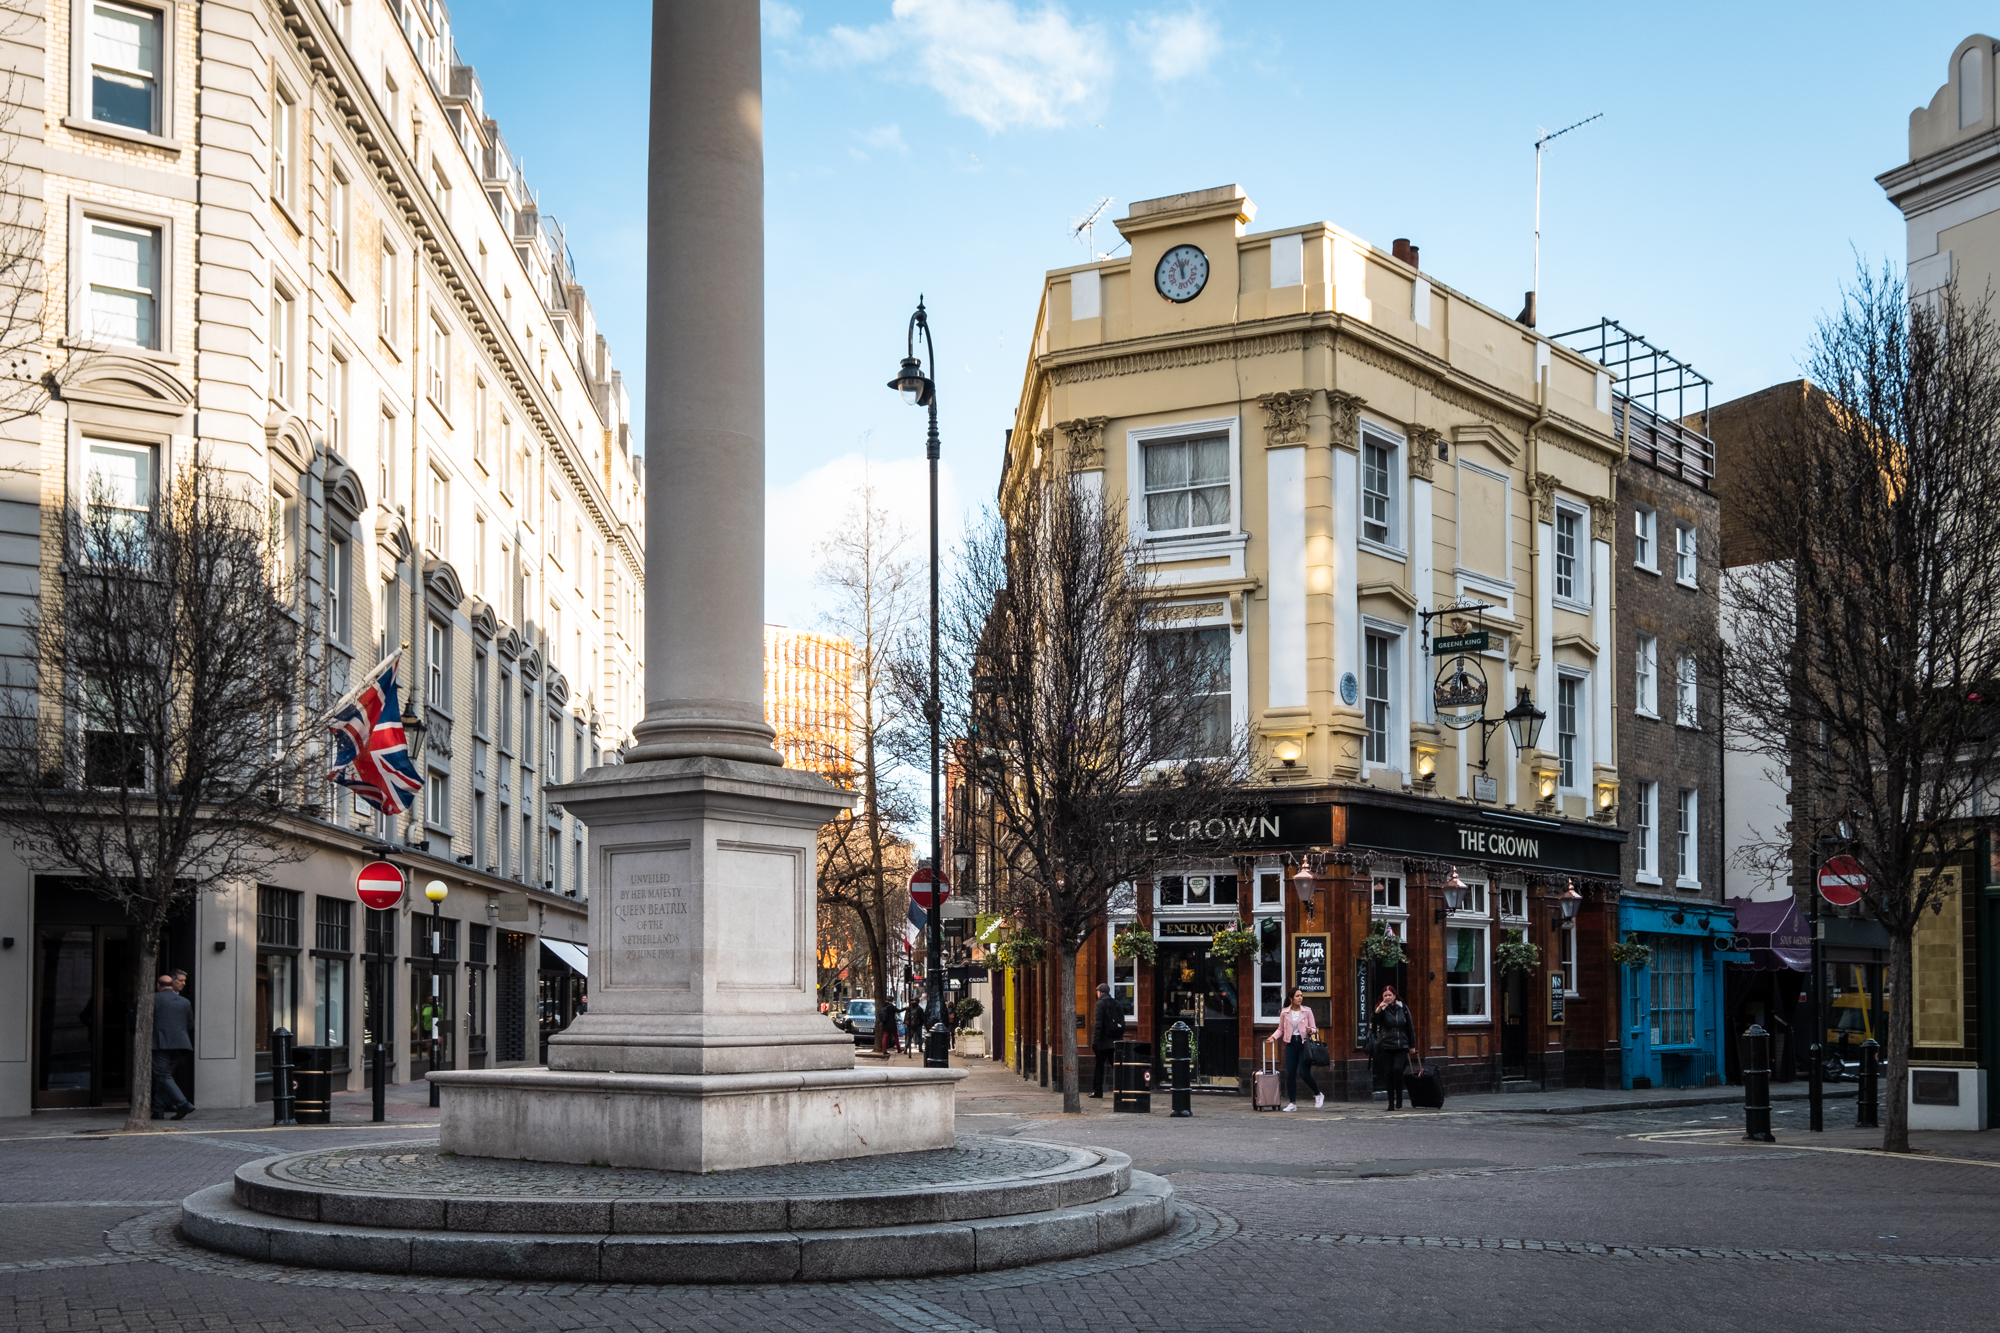 A photo of the Seven Dials junction, London taken by Trevor Sherwin